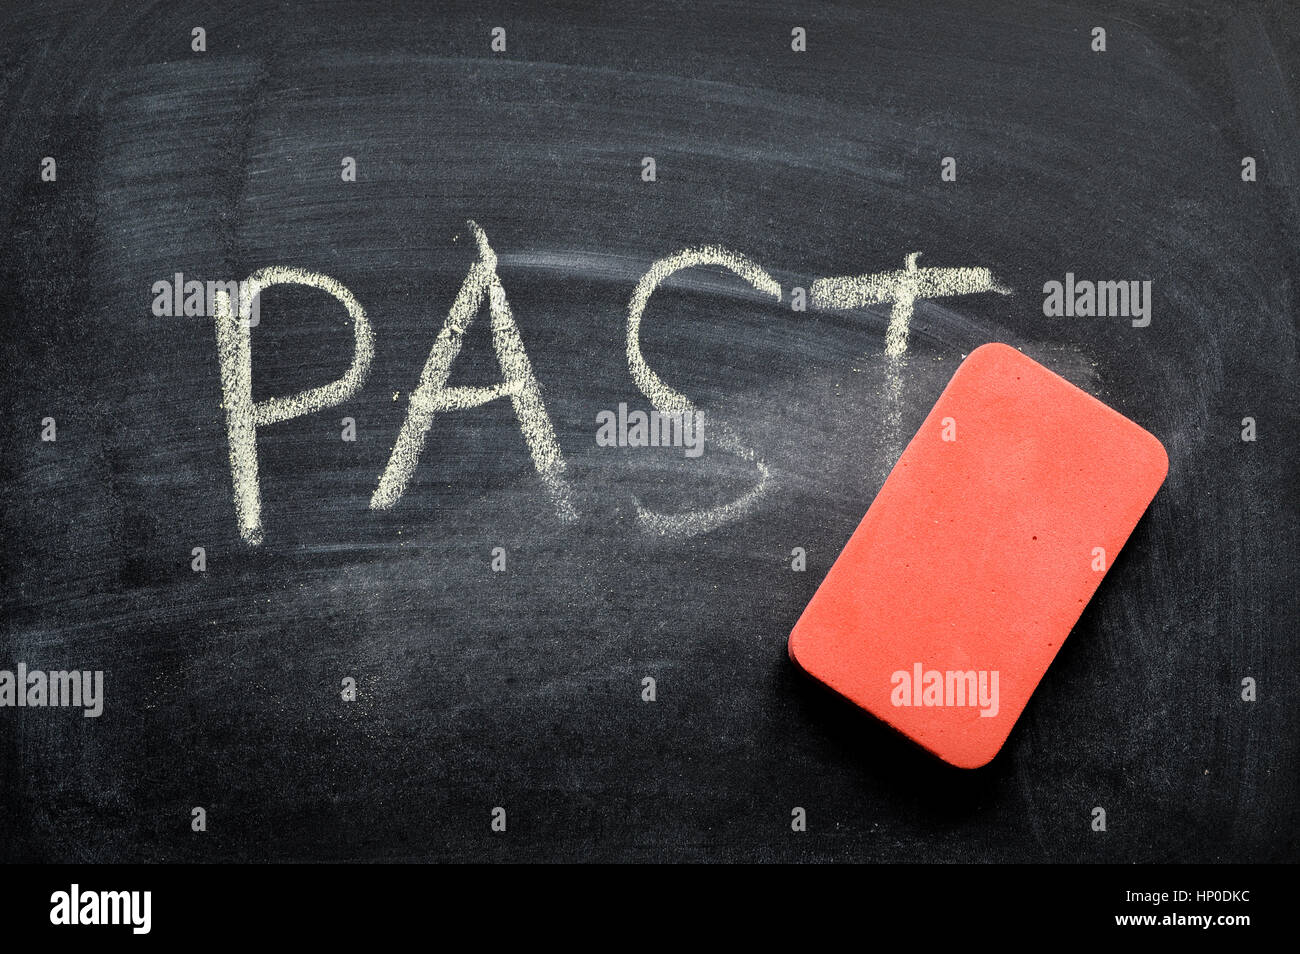 erasing past, hand written word on blackboard being erased concept - Stock Image